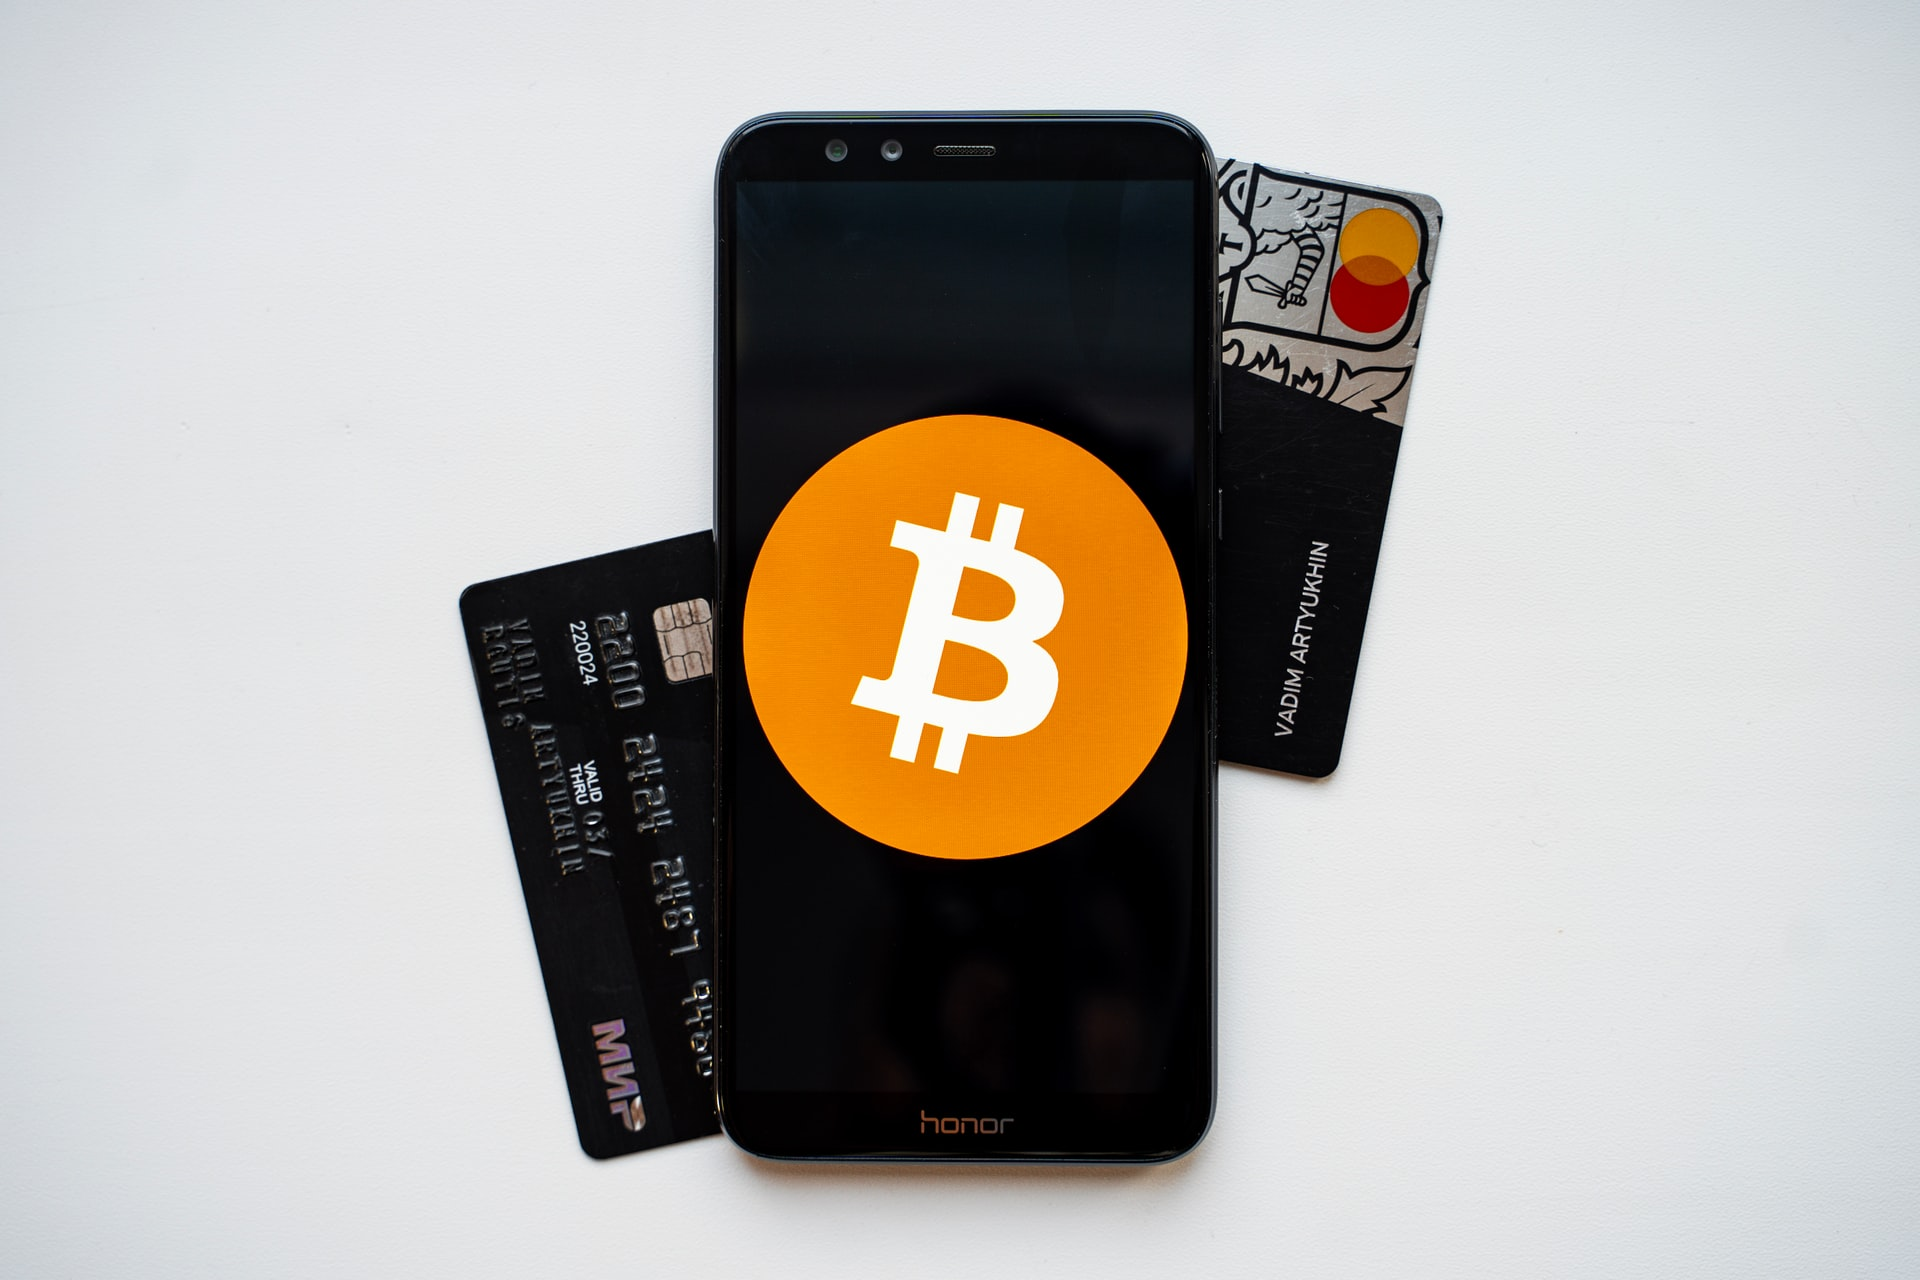 NerdCloud launches crypto payments and credit card payments with Utrust & Stripe